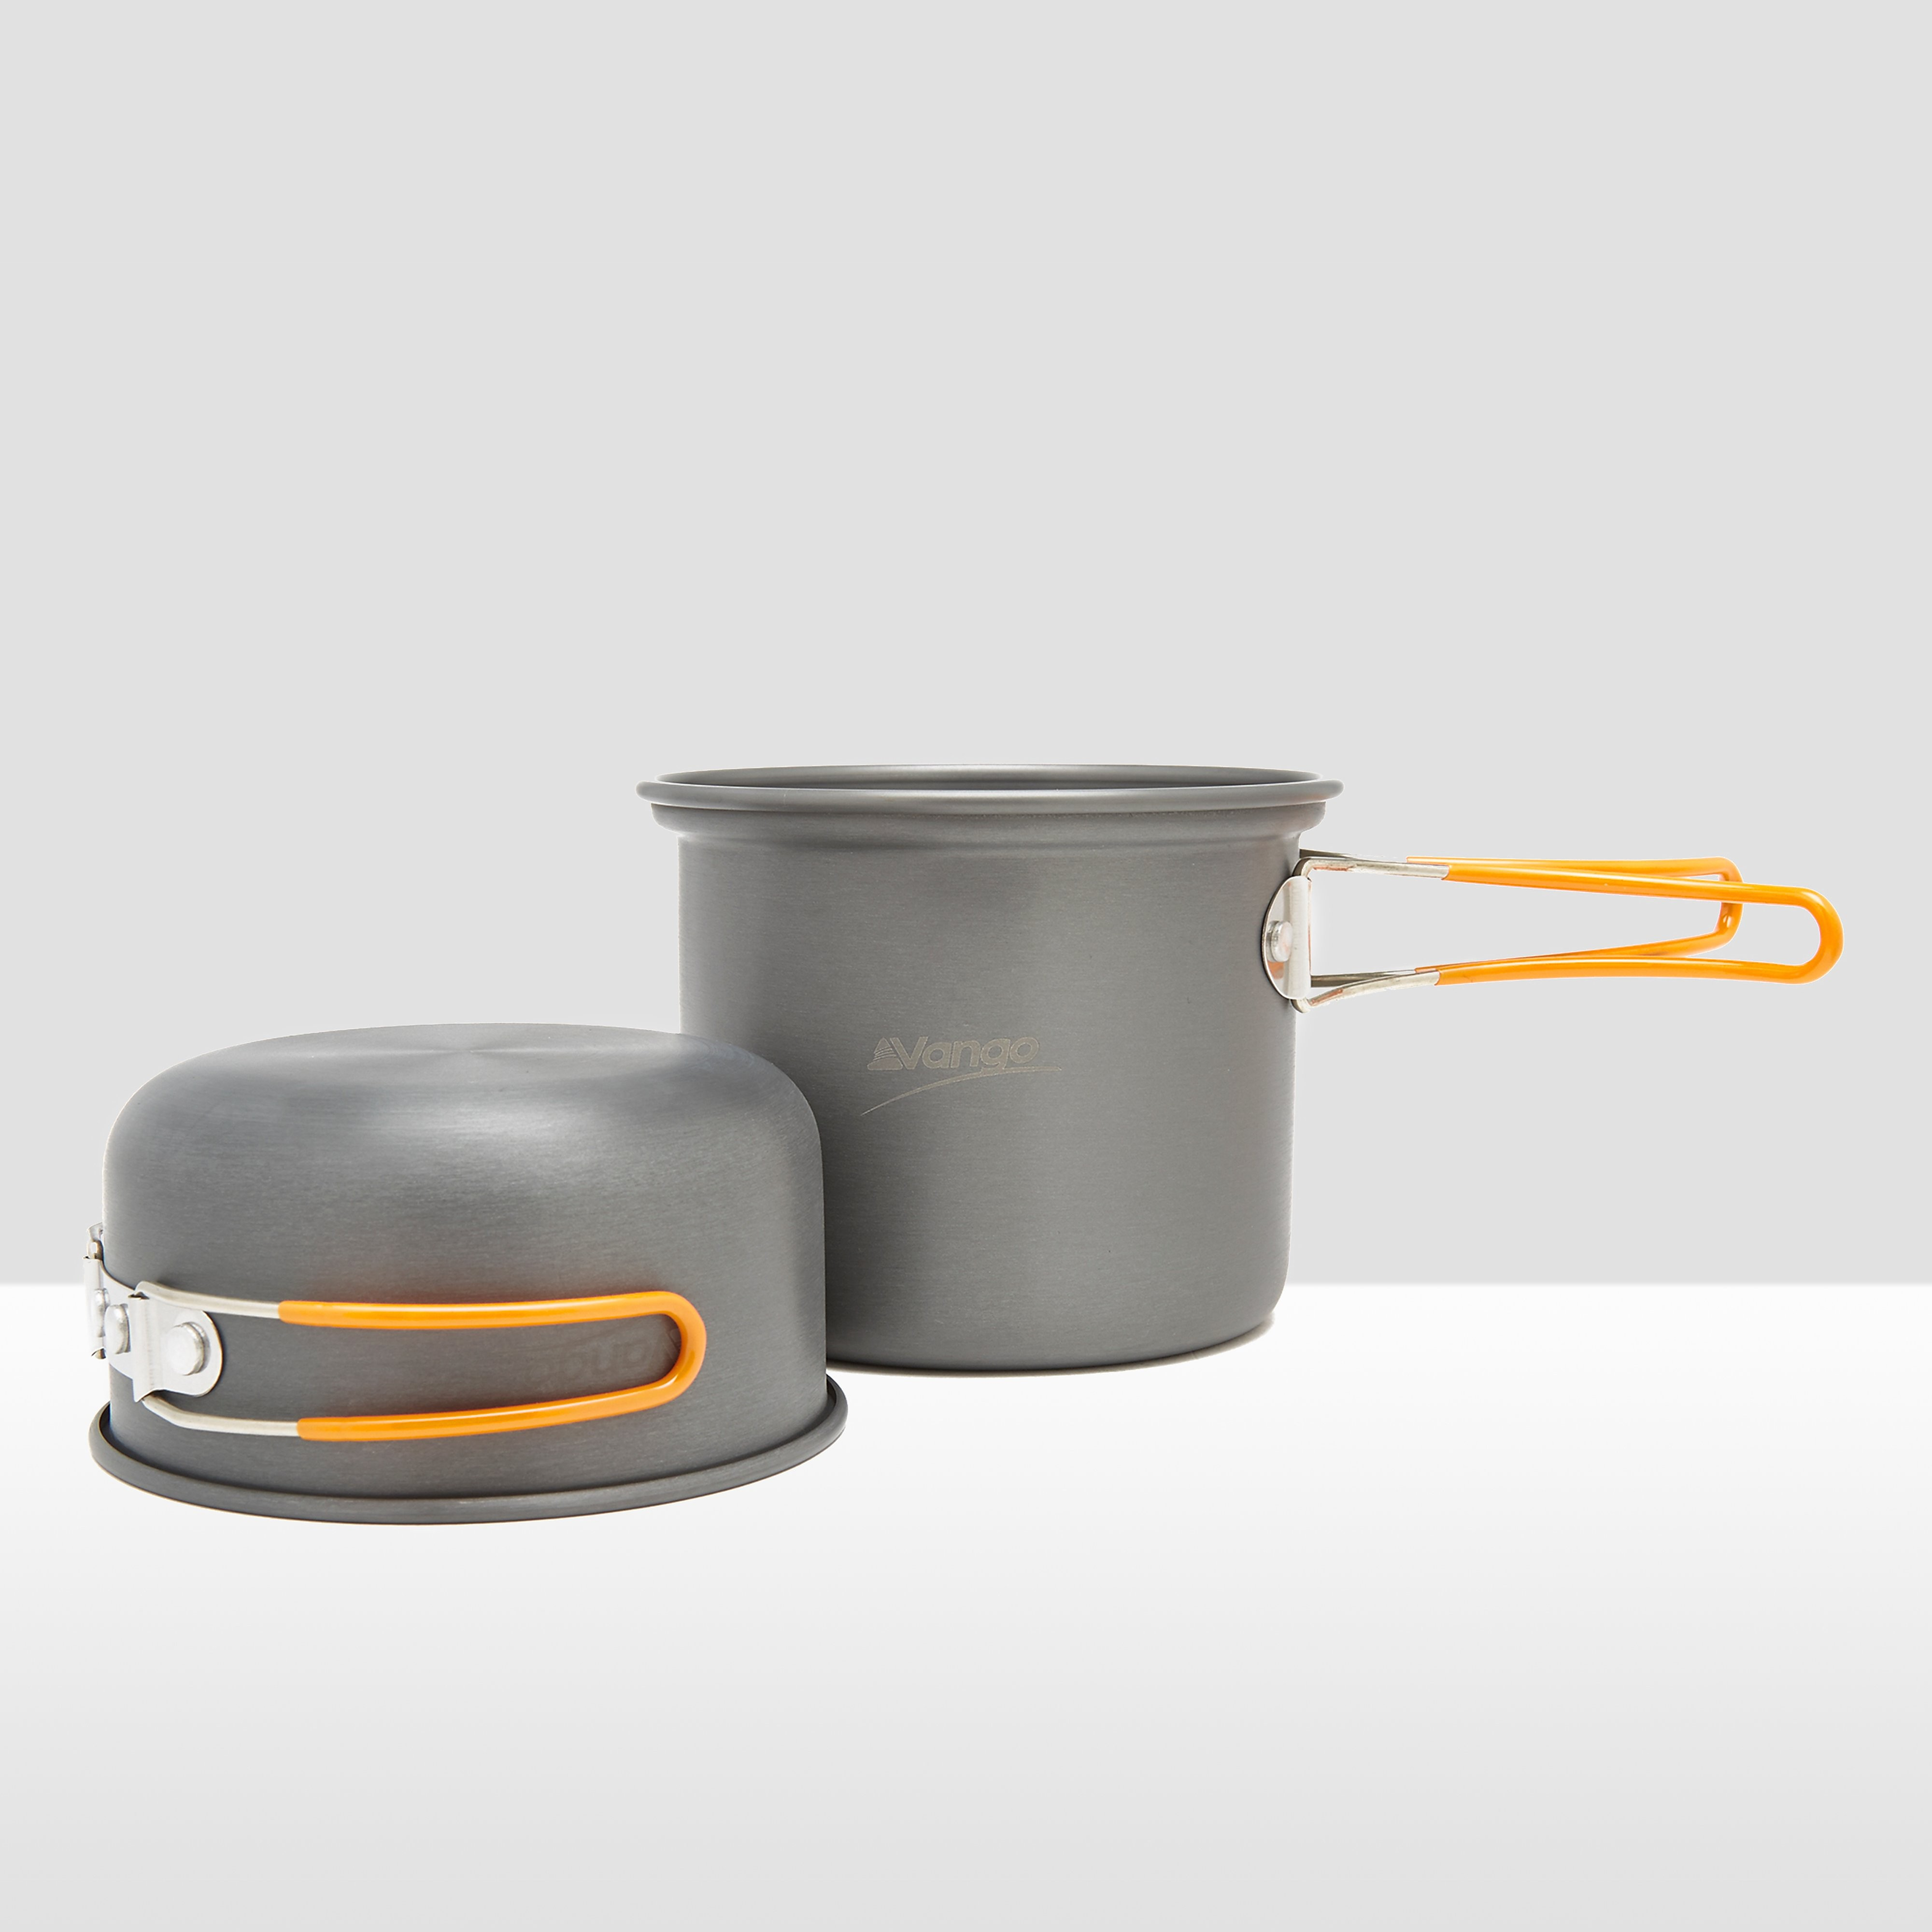 Vango Hard Anodised One Person Cook Kit